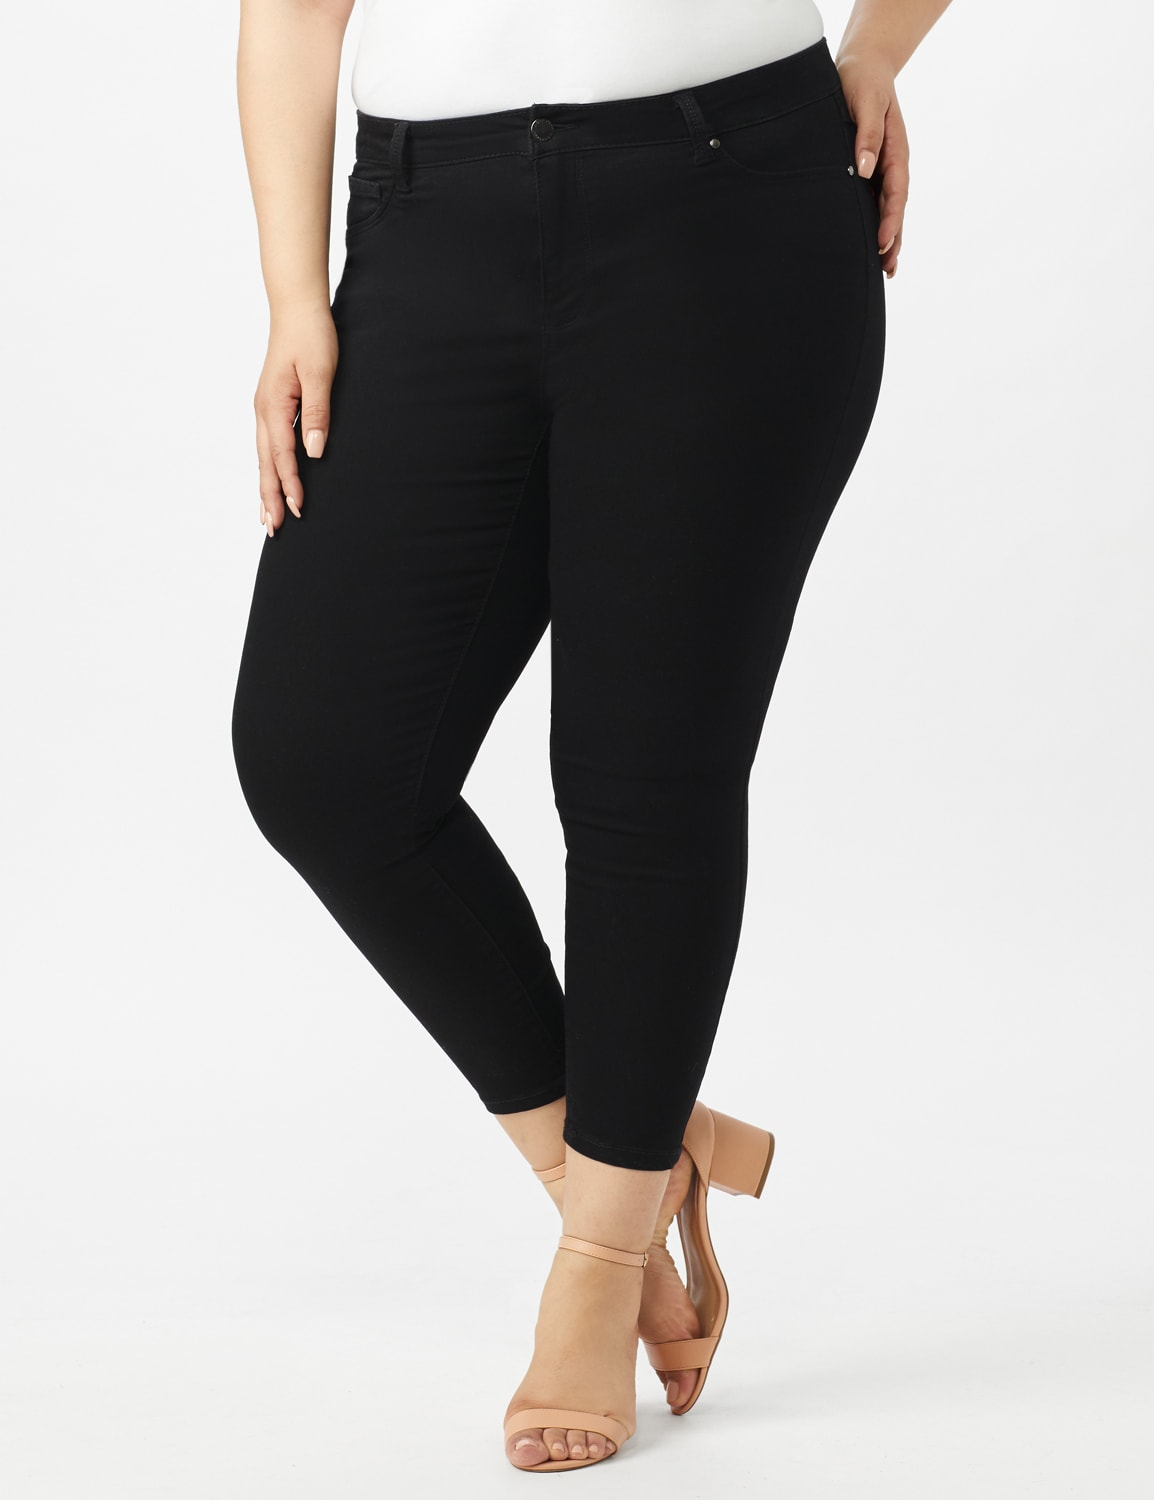 5 Pocket Skinny Ankle Length Jeans - Black - Front